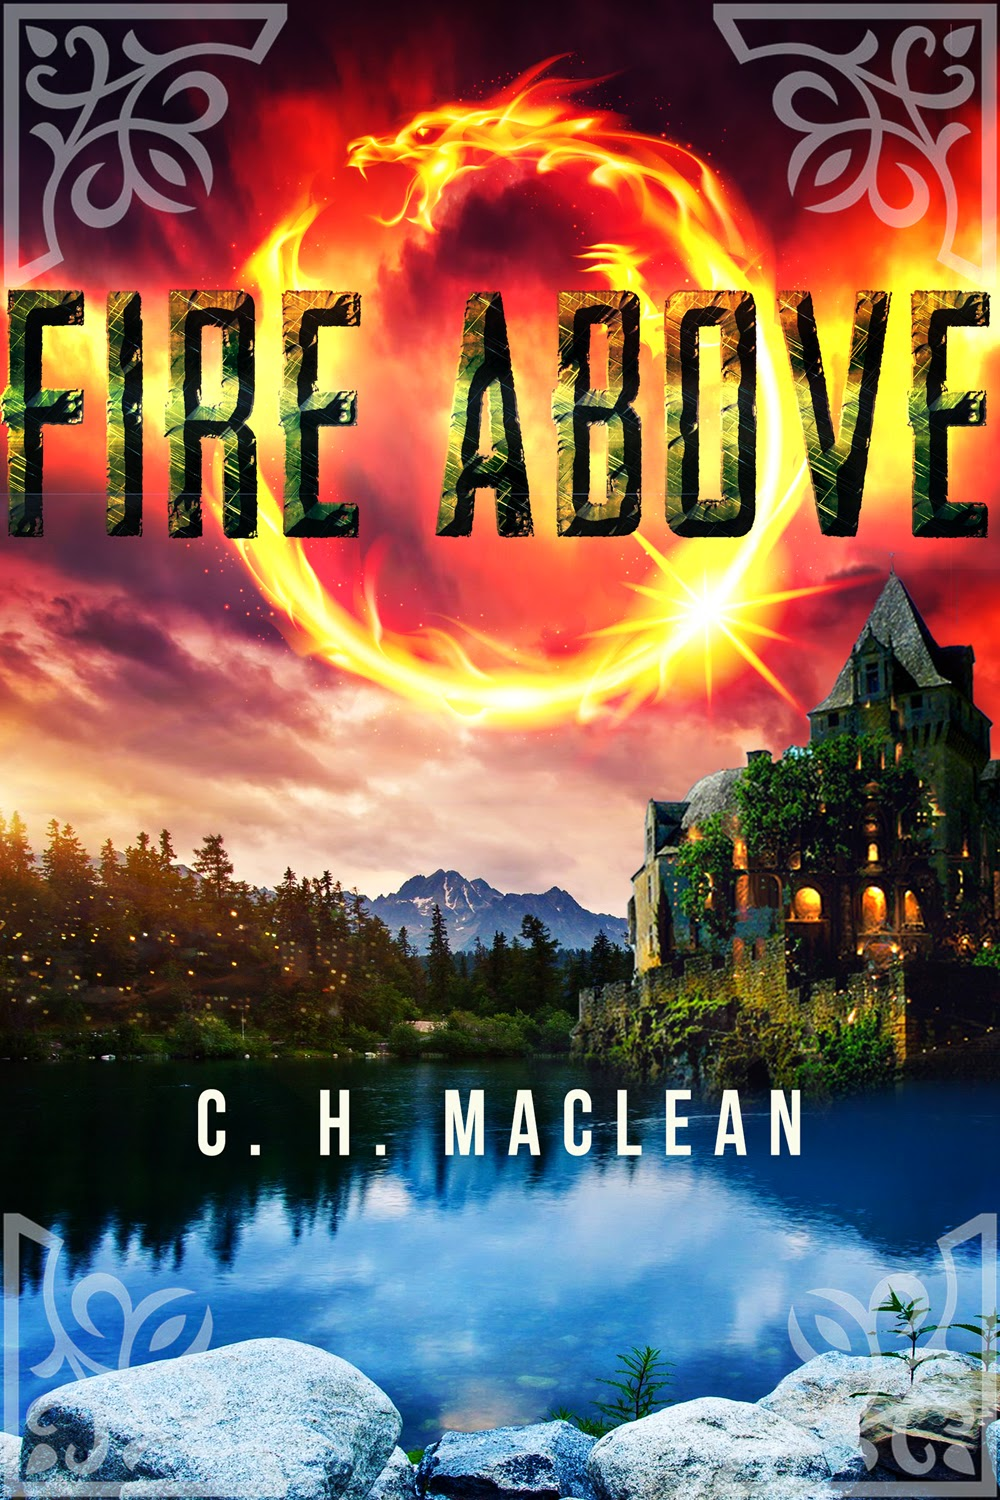 Special excerpt from fantasy novel Fire Above by C. H. MacLean